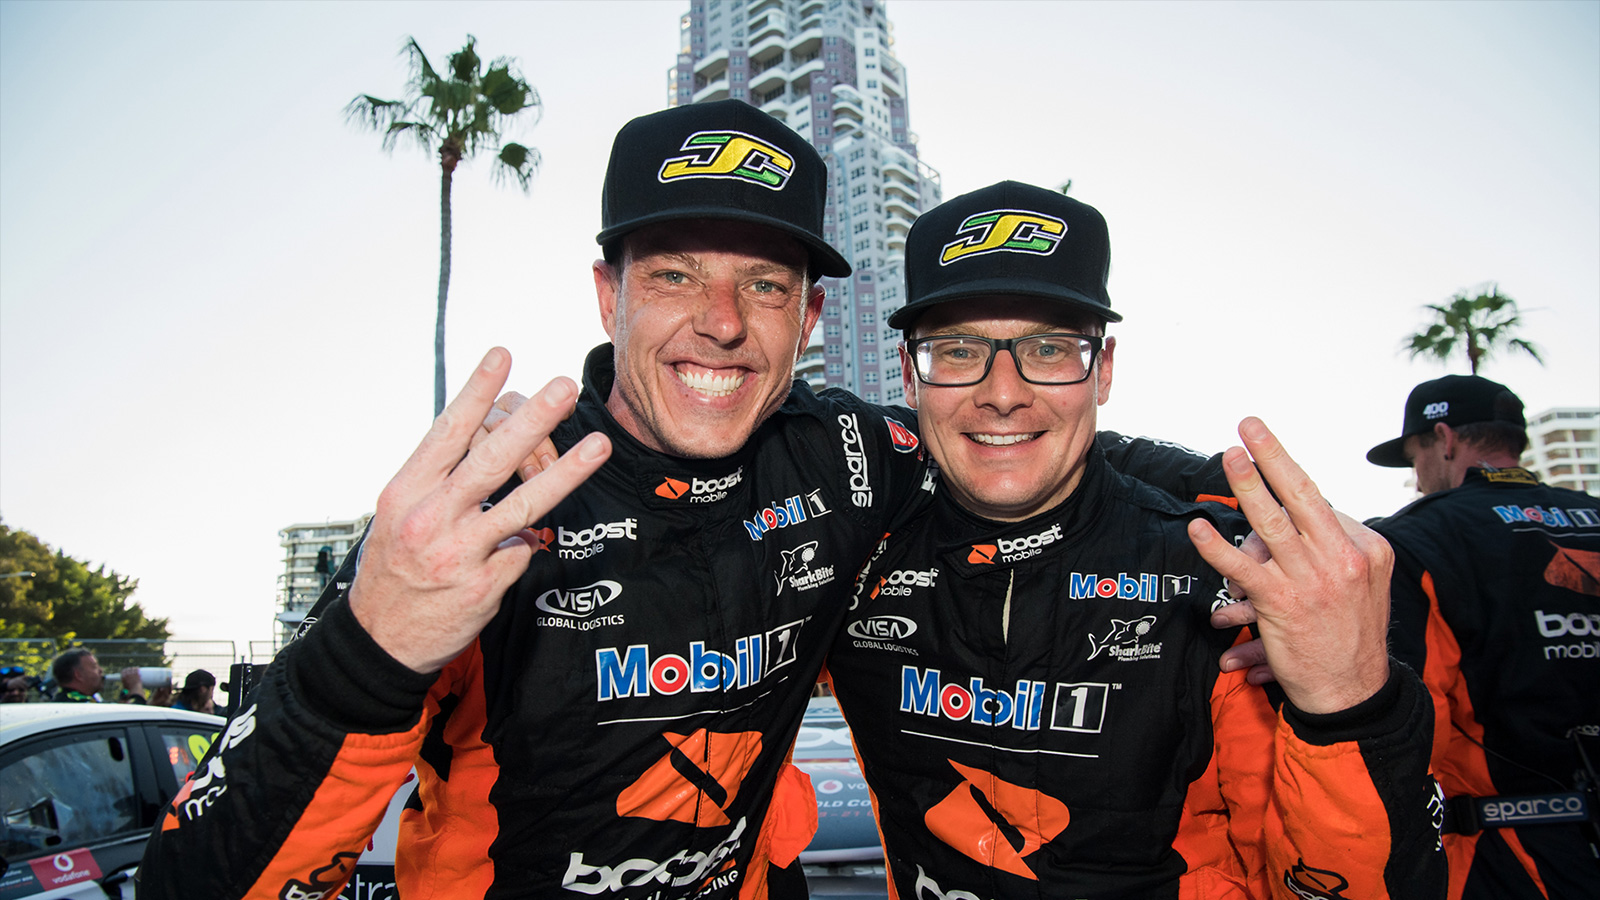 Podium Caps Off 400th Celebrations